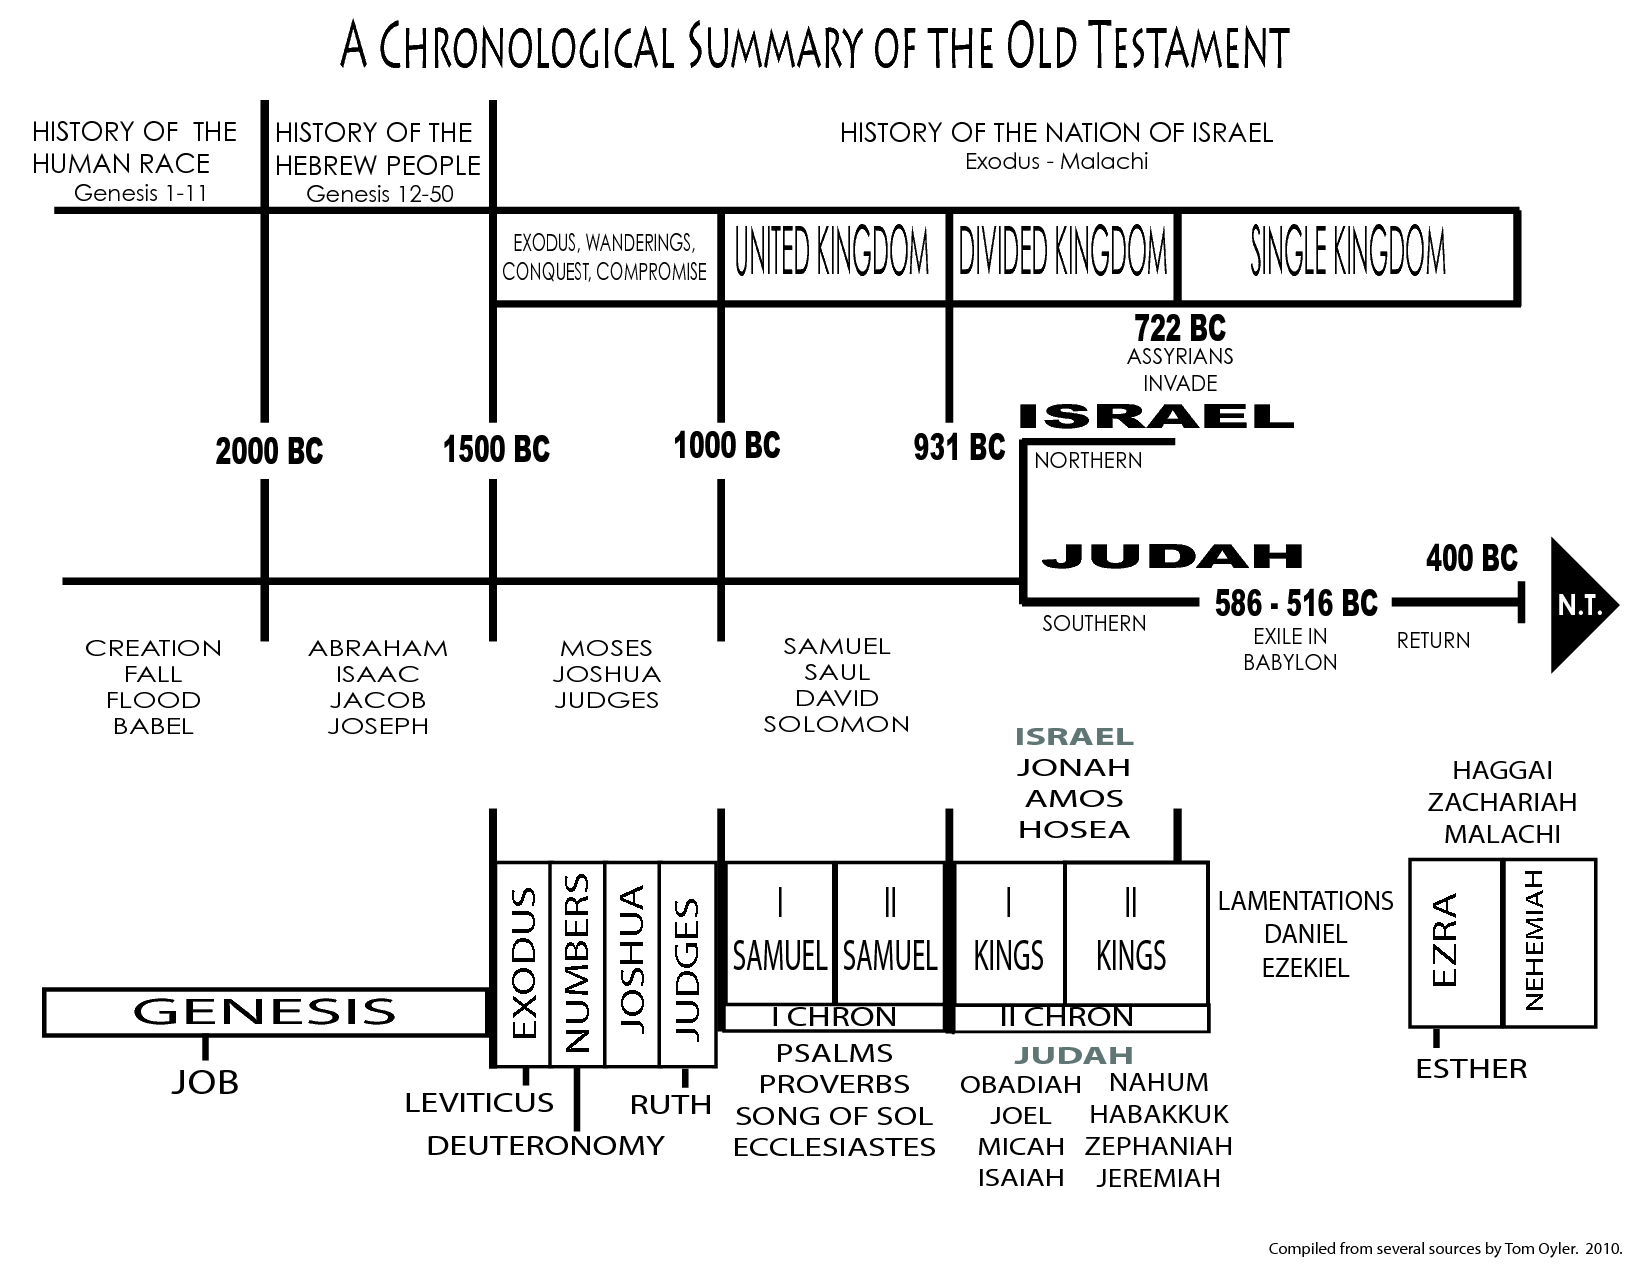 Timeline Comparing 1 Amp 2 Chronicles With 1 Samuel Through